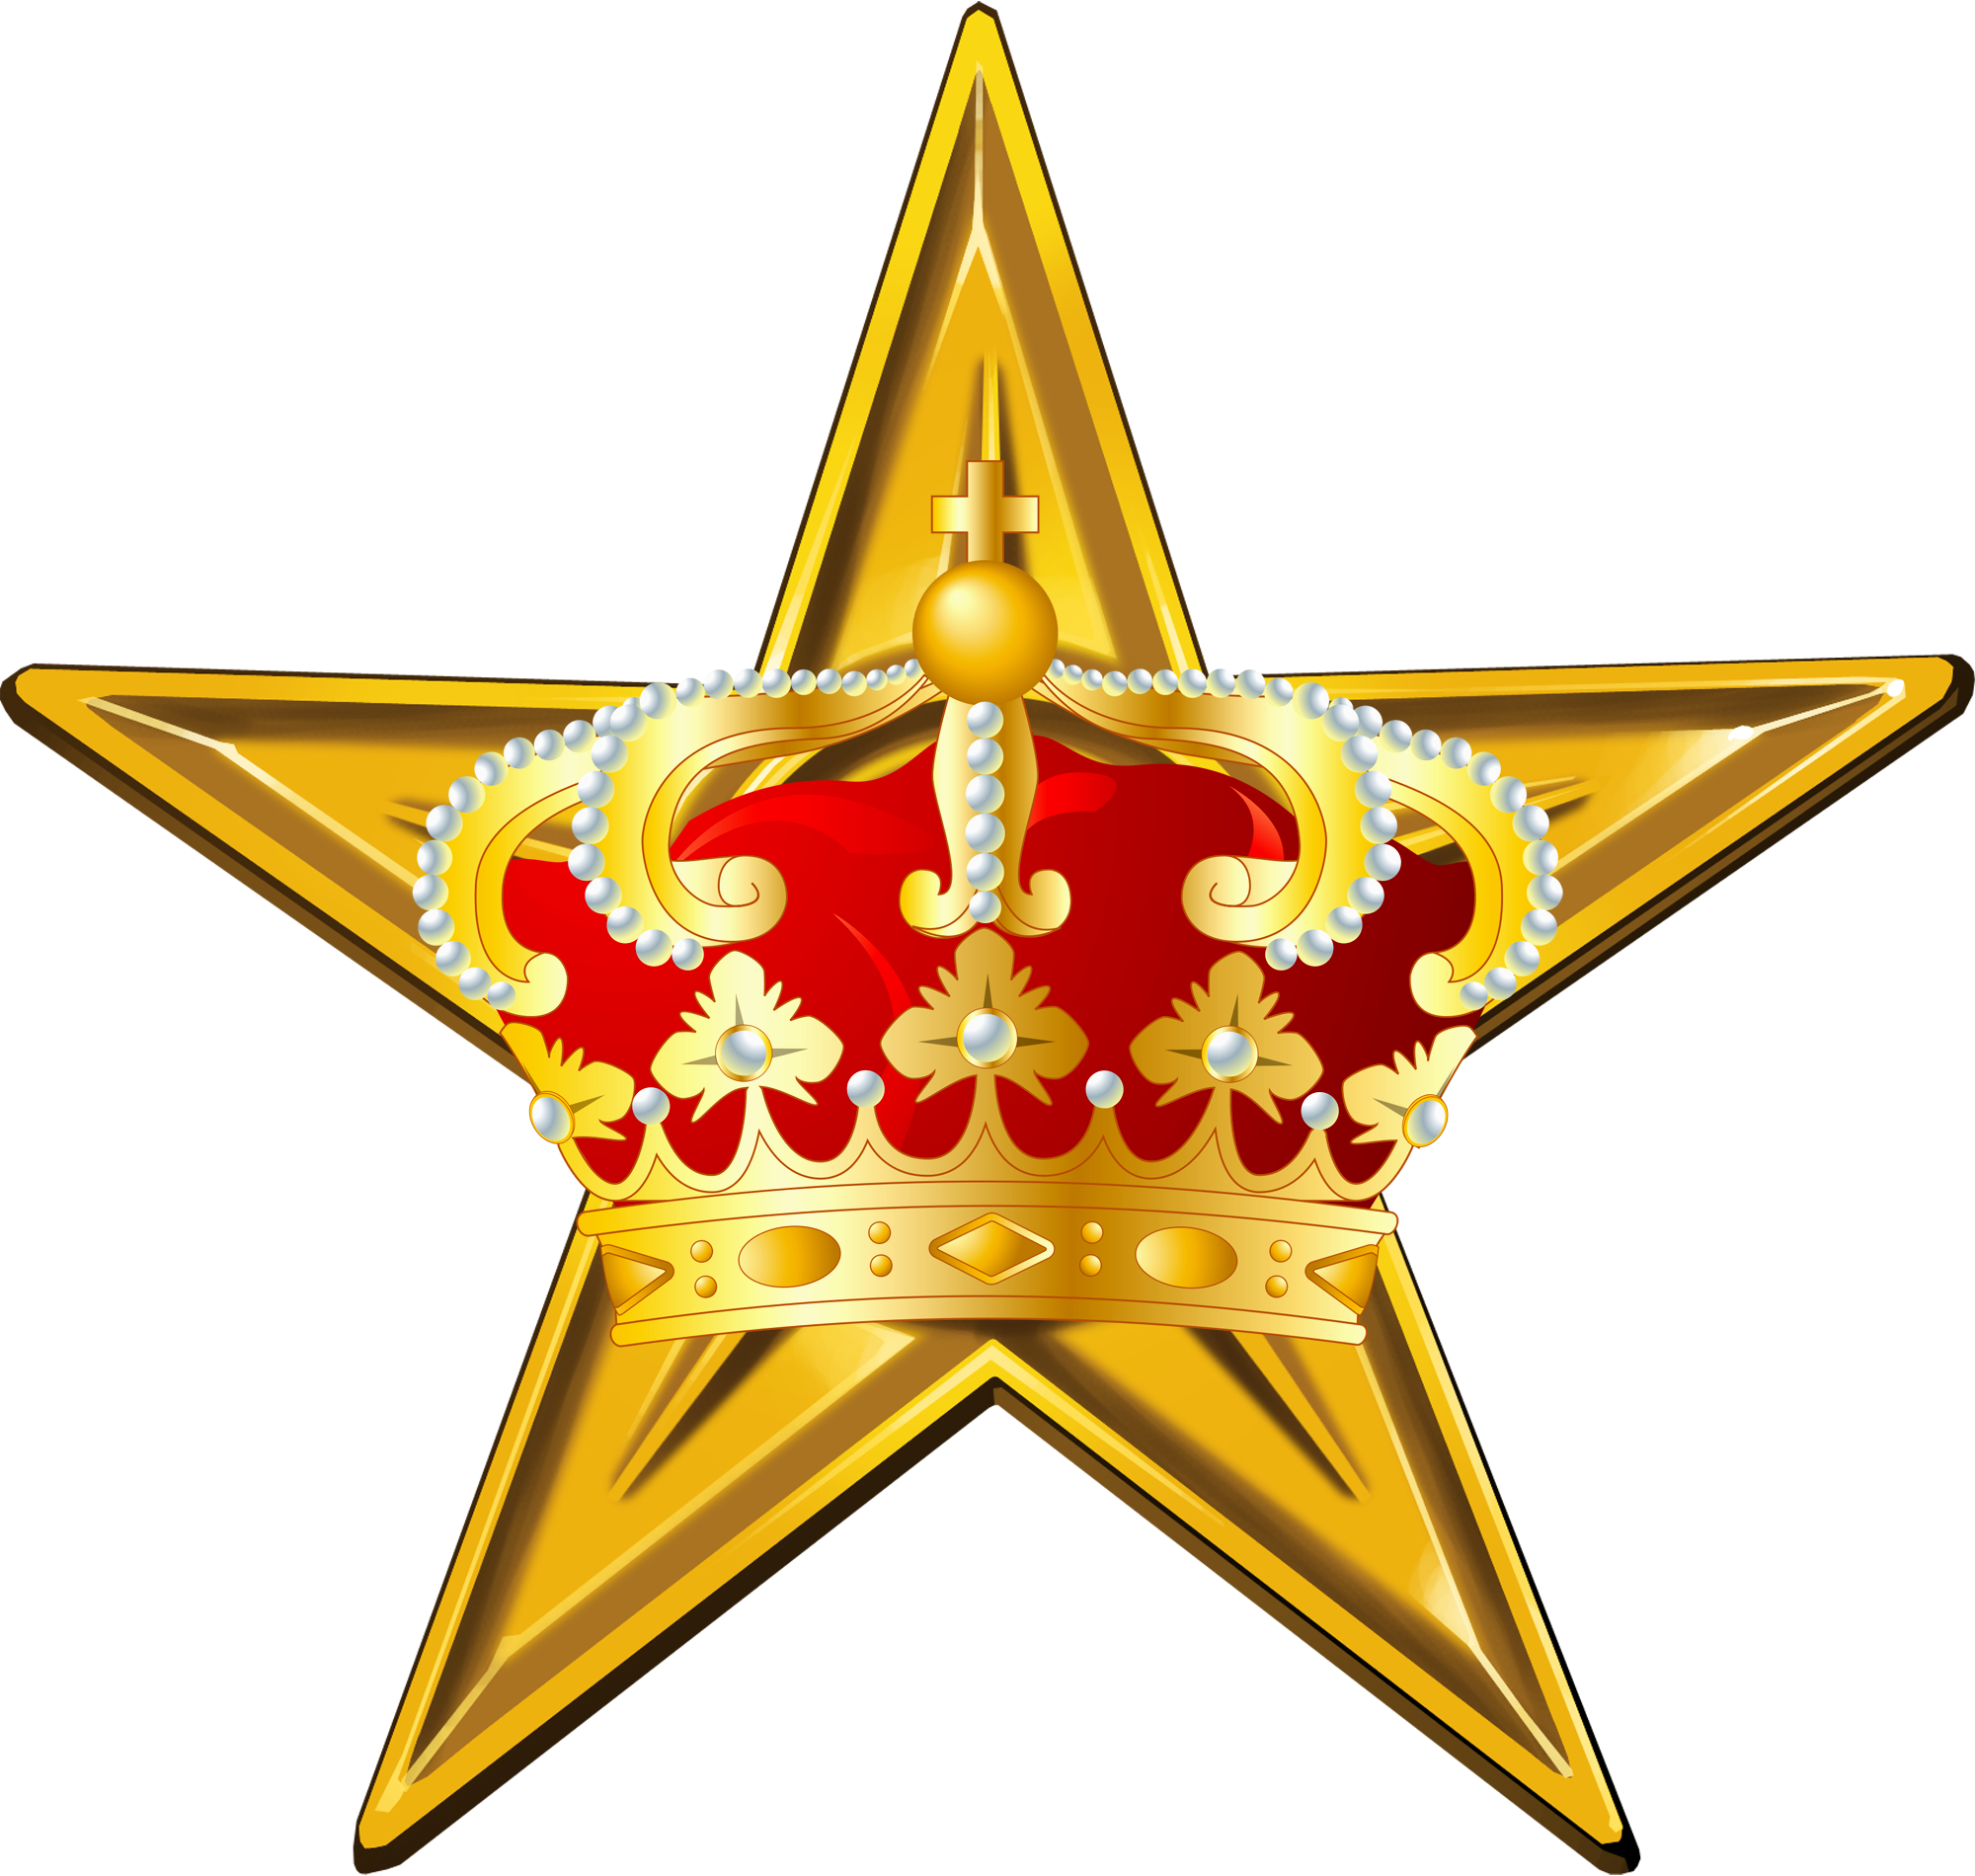 File:Royalty Barnstar Hires.png - Wikipedia, the free encyclopedia: en.wikipedia.org/wiki/File:Royalty_Barnstar_Hires.png